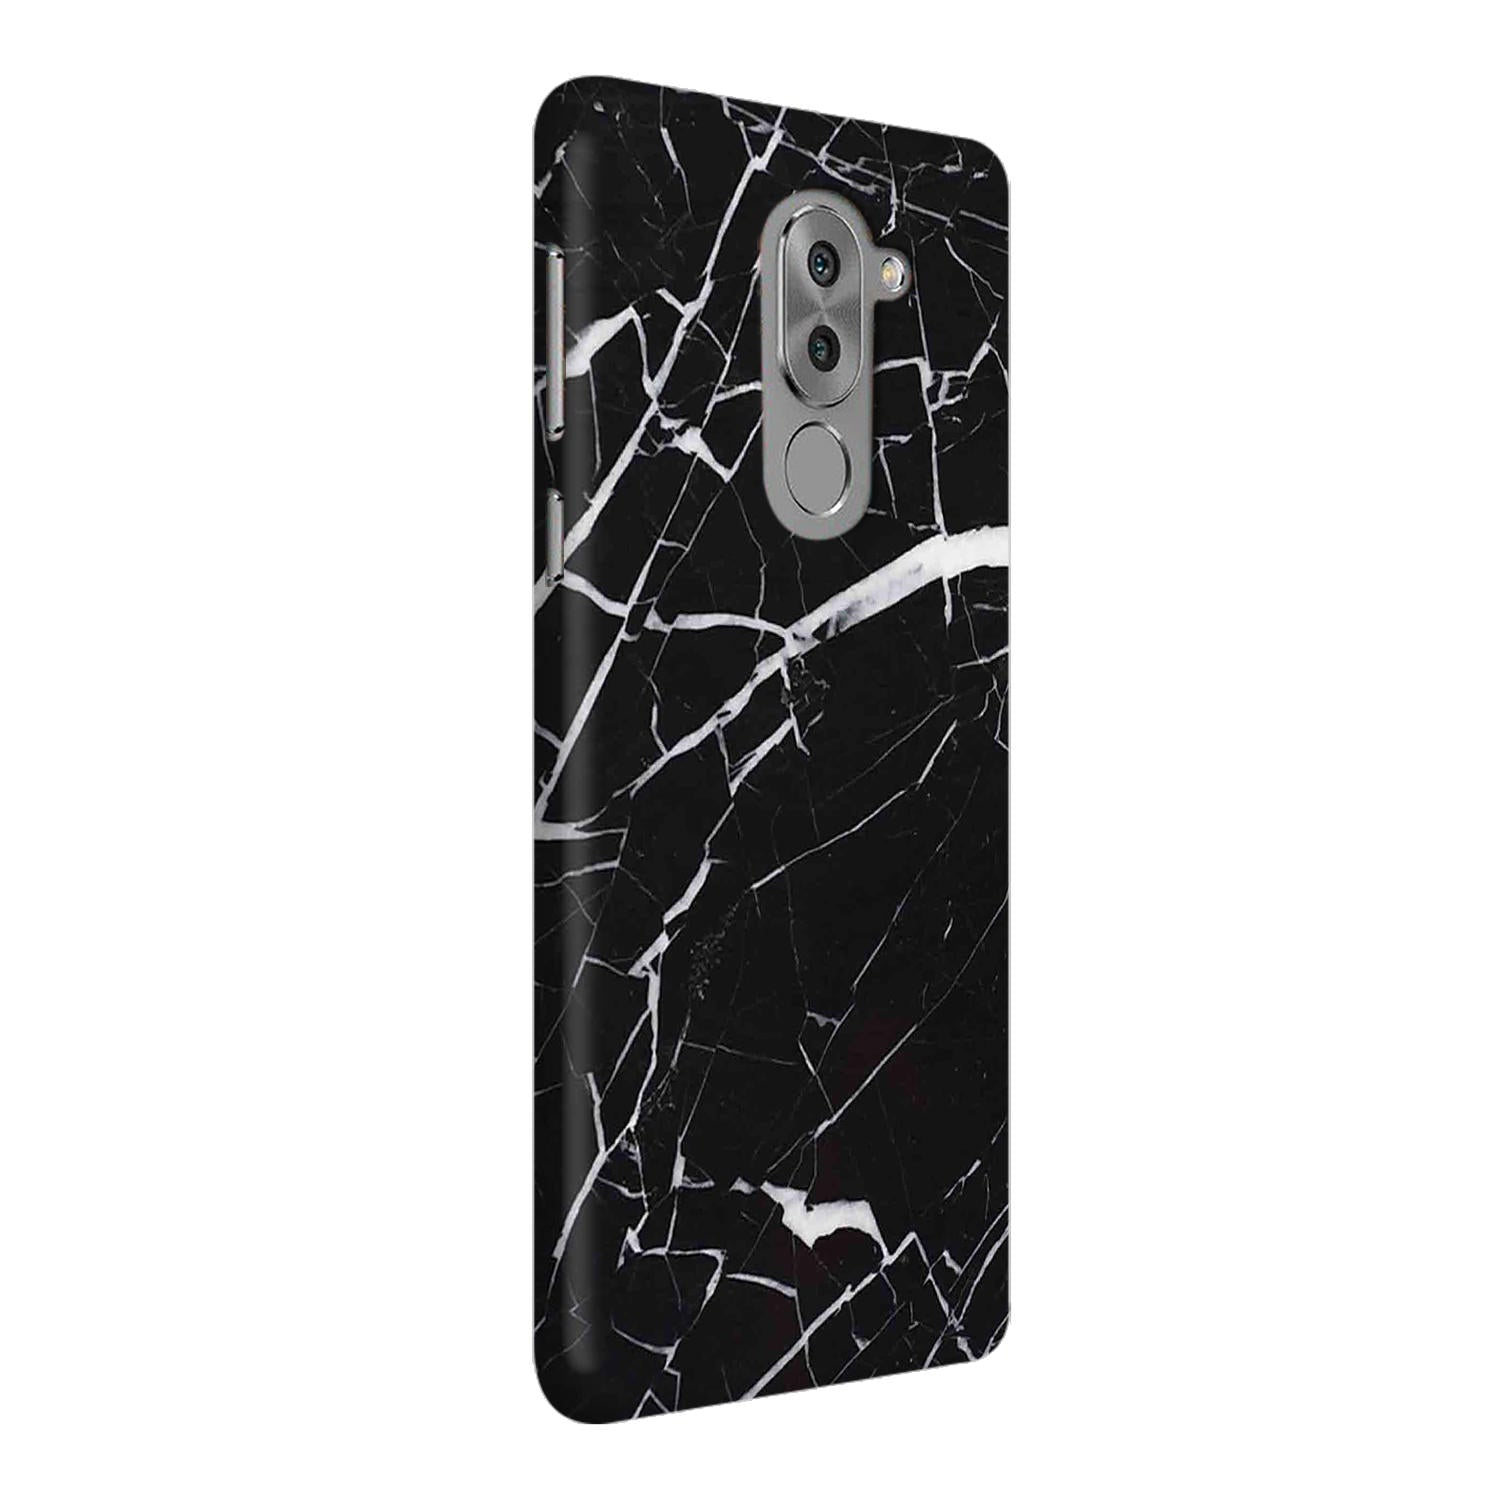 Dark Marble Honor 6X Mobile Cover Case